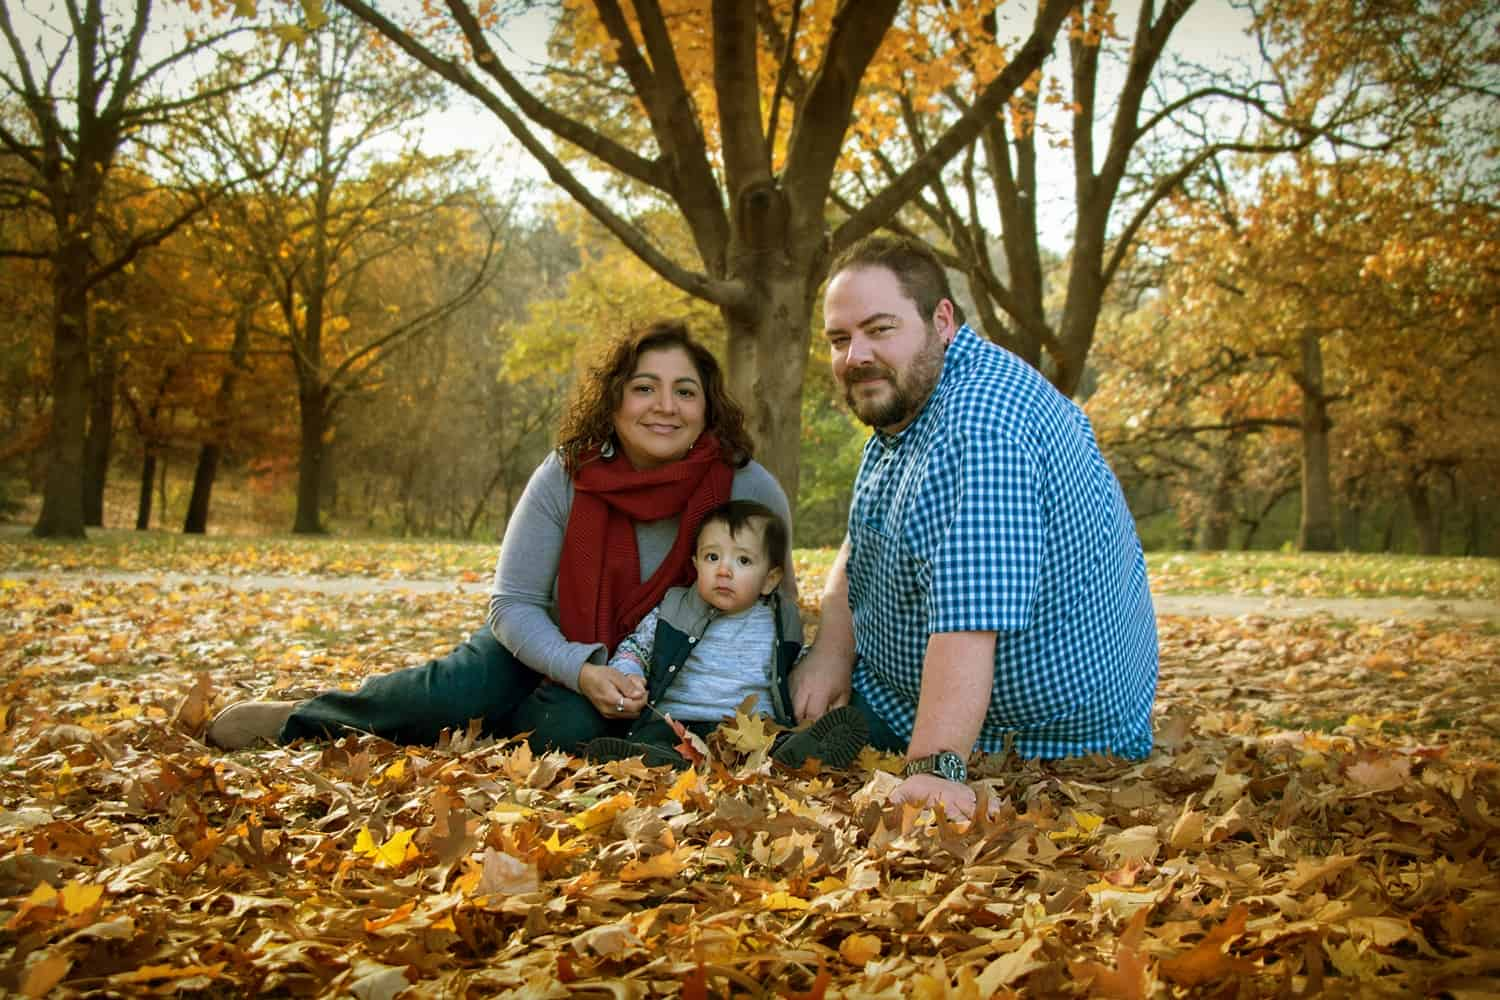 Marisa Gonzales, Graphic Artist, Family Photo in Fall 2018